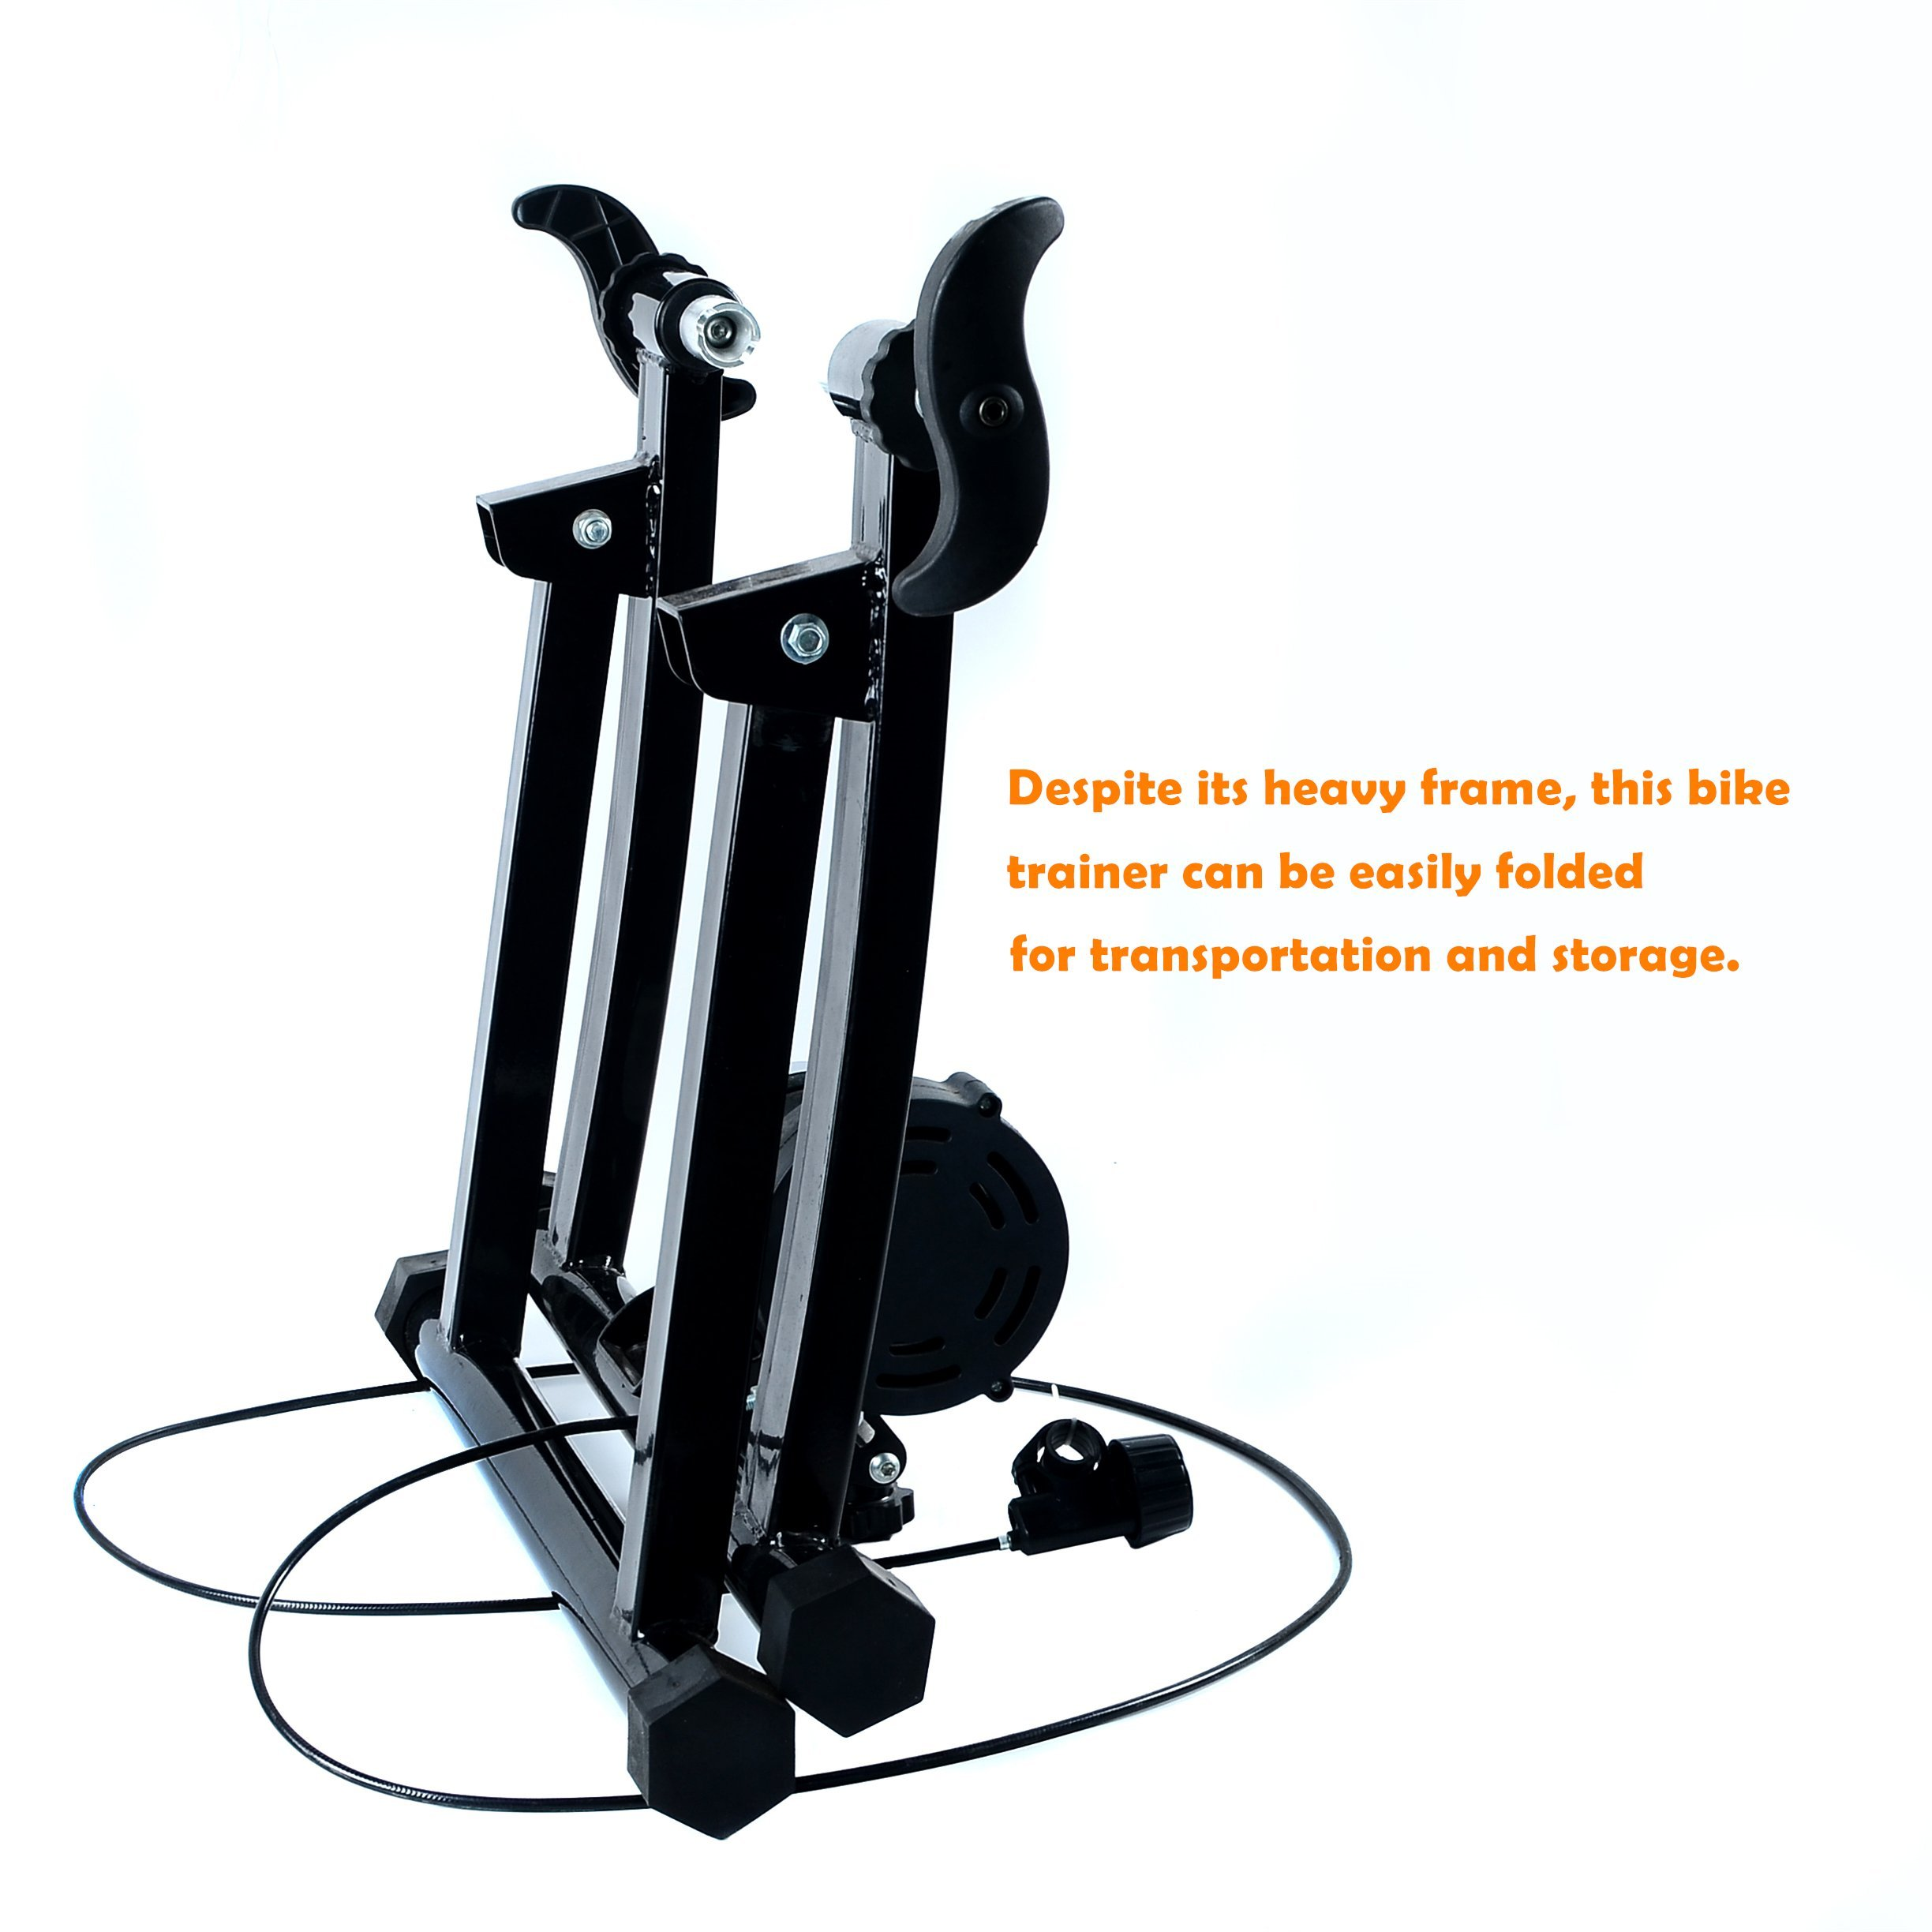 Ohuhu Magnet Steel Bike Bicycle Indoor Exercise Trainer Stand by Ohuhu (Image #6)